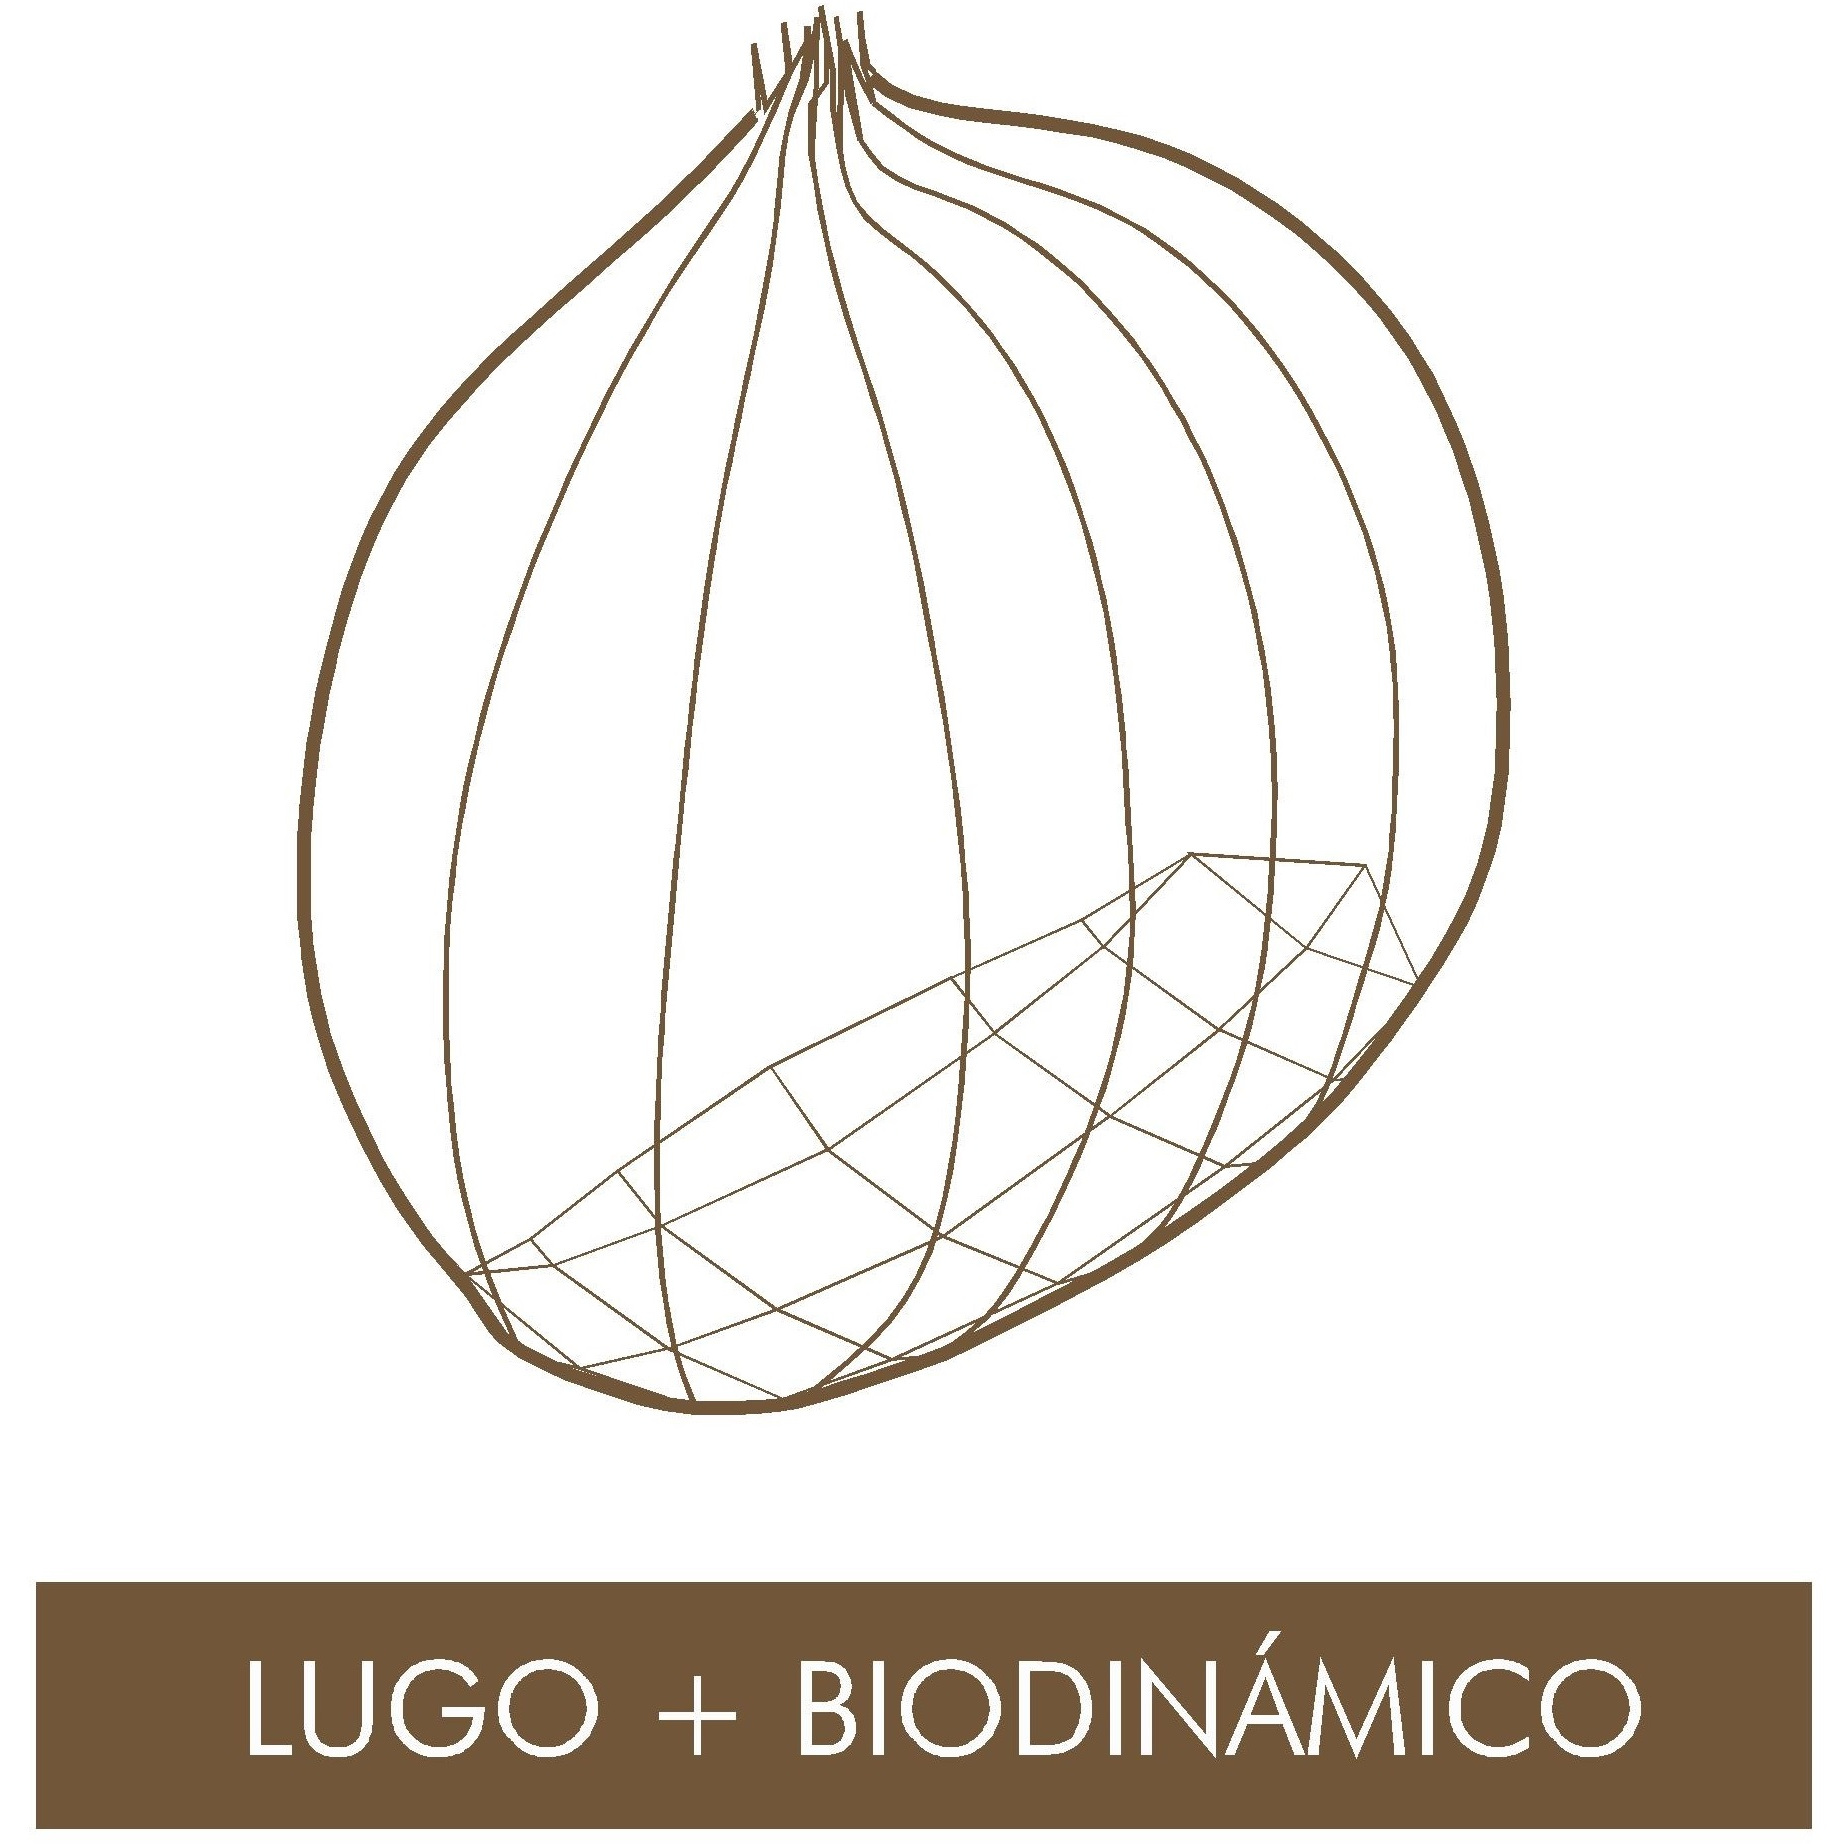 LIFE LUGO+BIODINÁMICO - Planning of a multi-ecological neighborhood as a model of urban resilience (LIFE14 CCA/ES/000489)